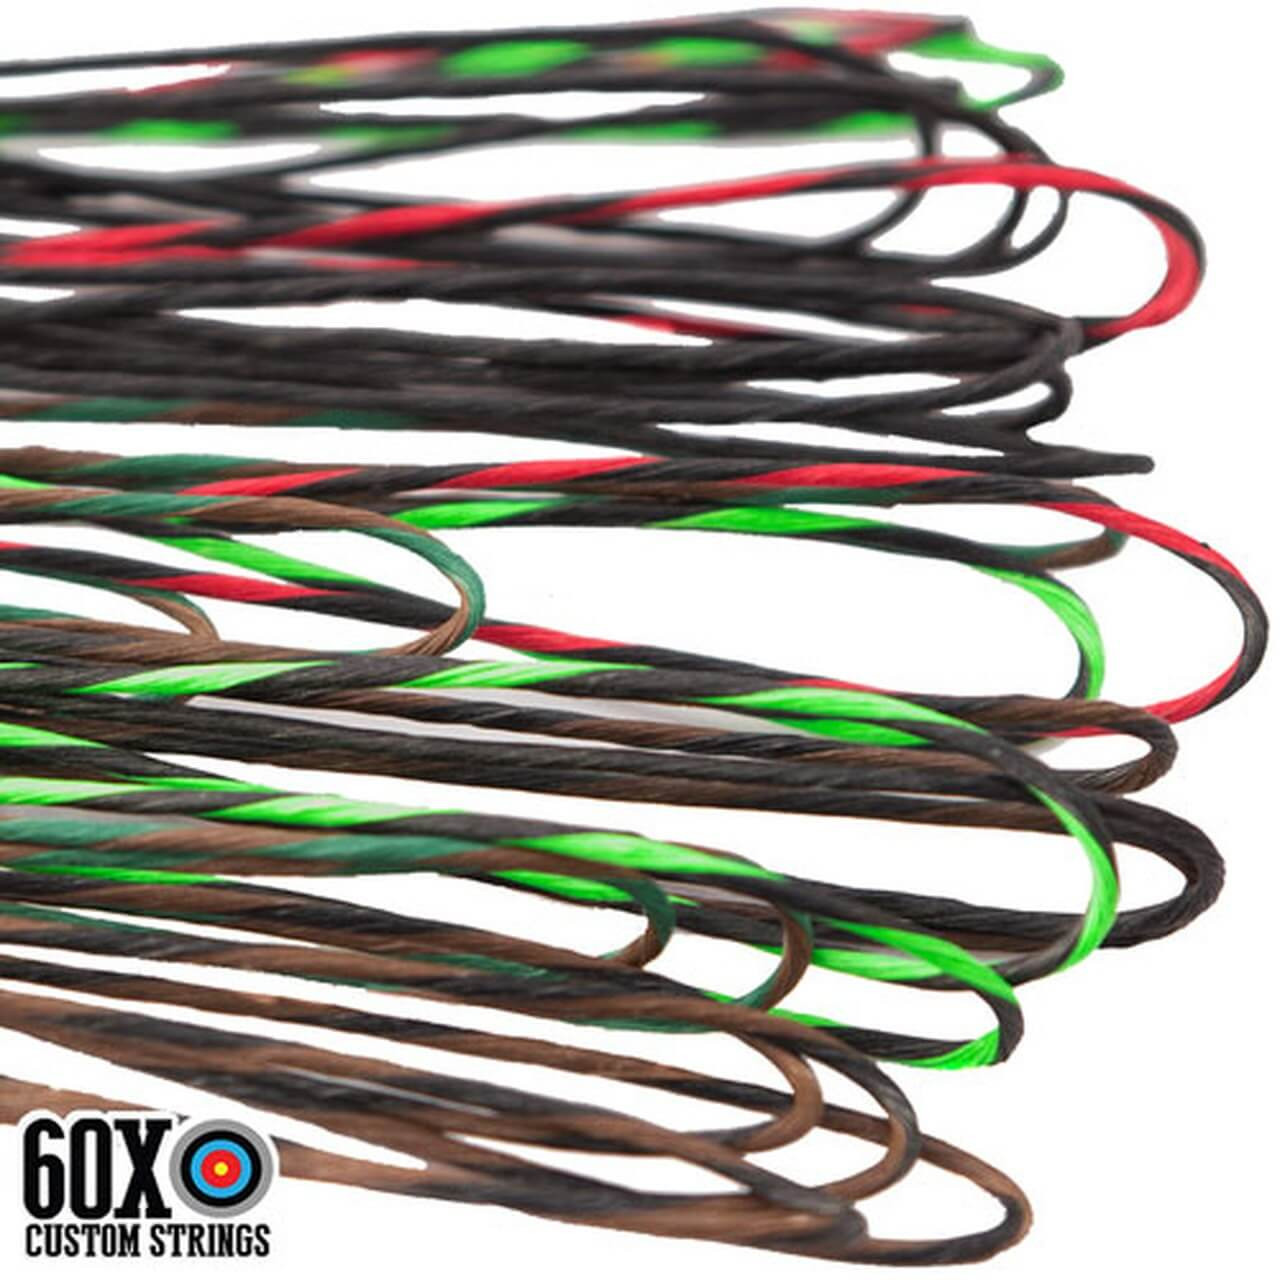 Parker Hammer 325 Crossbow String /& Cable set by 60X Custom Strings